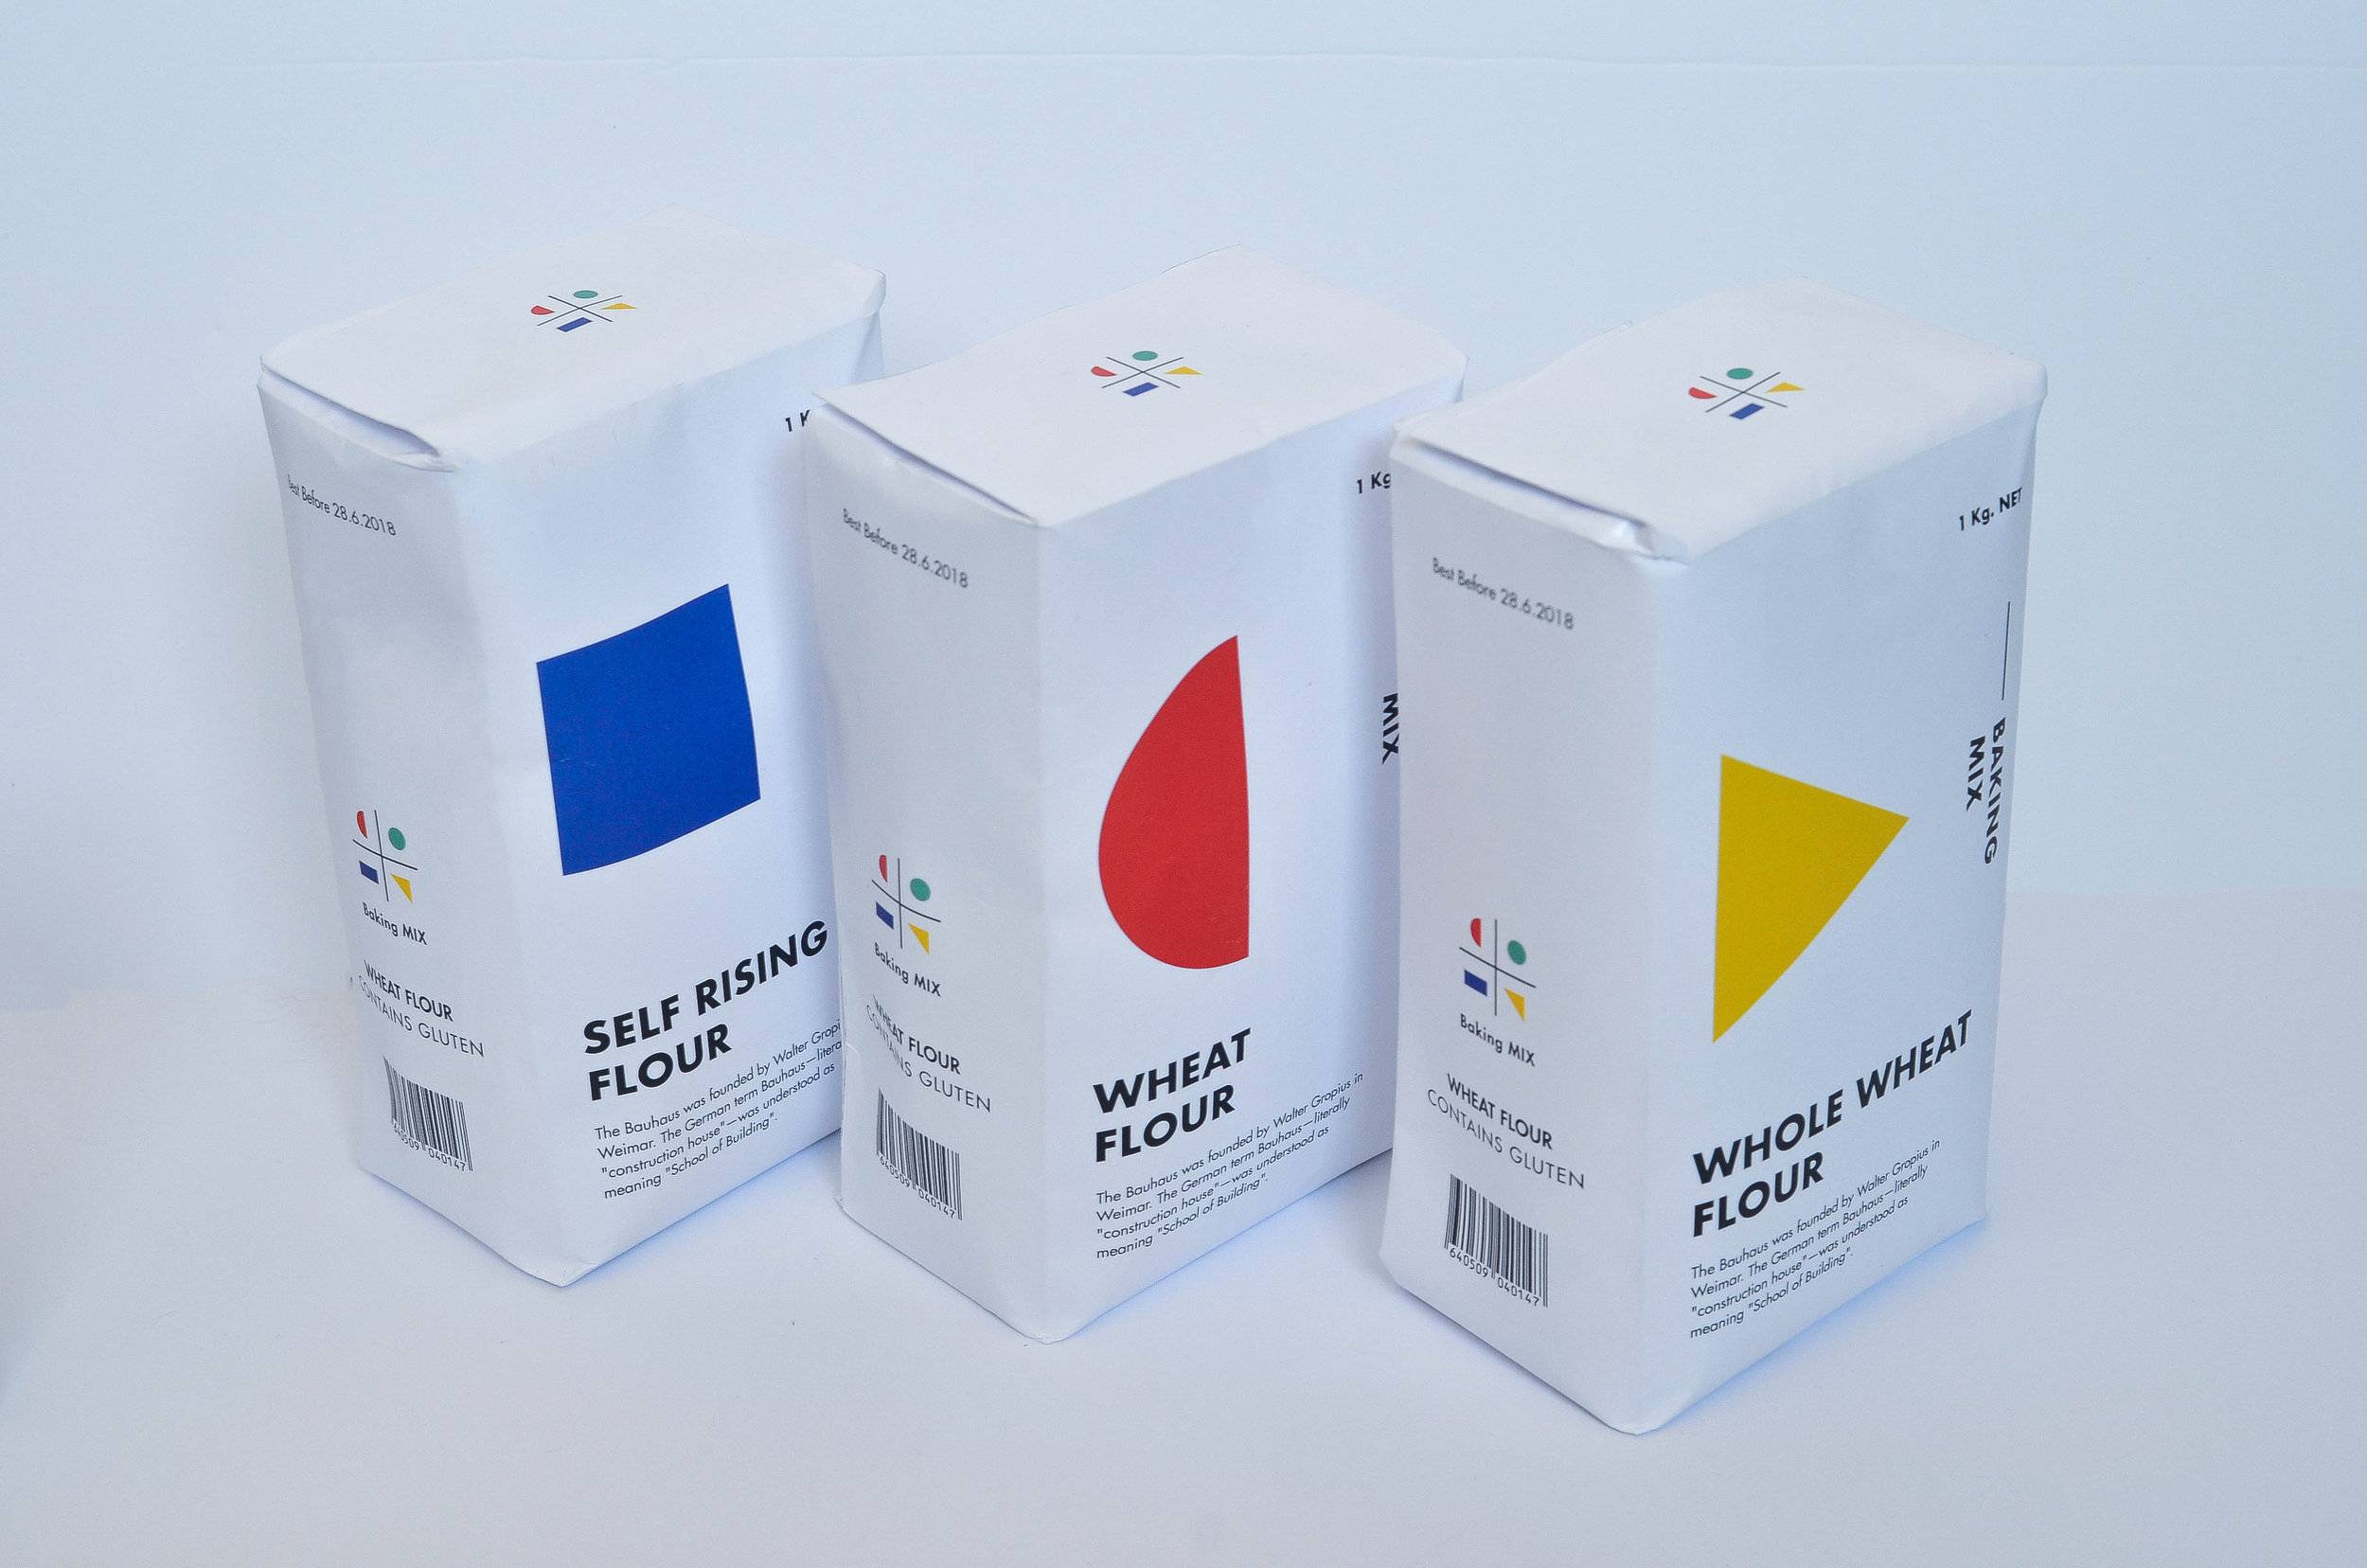 Student Concept for Baking Brand and Packaging Design with Bauhaus Influence